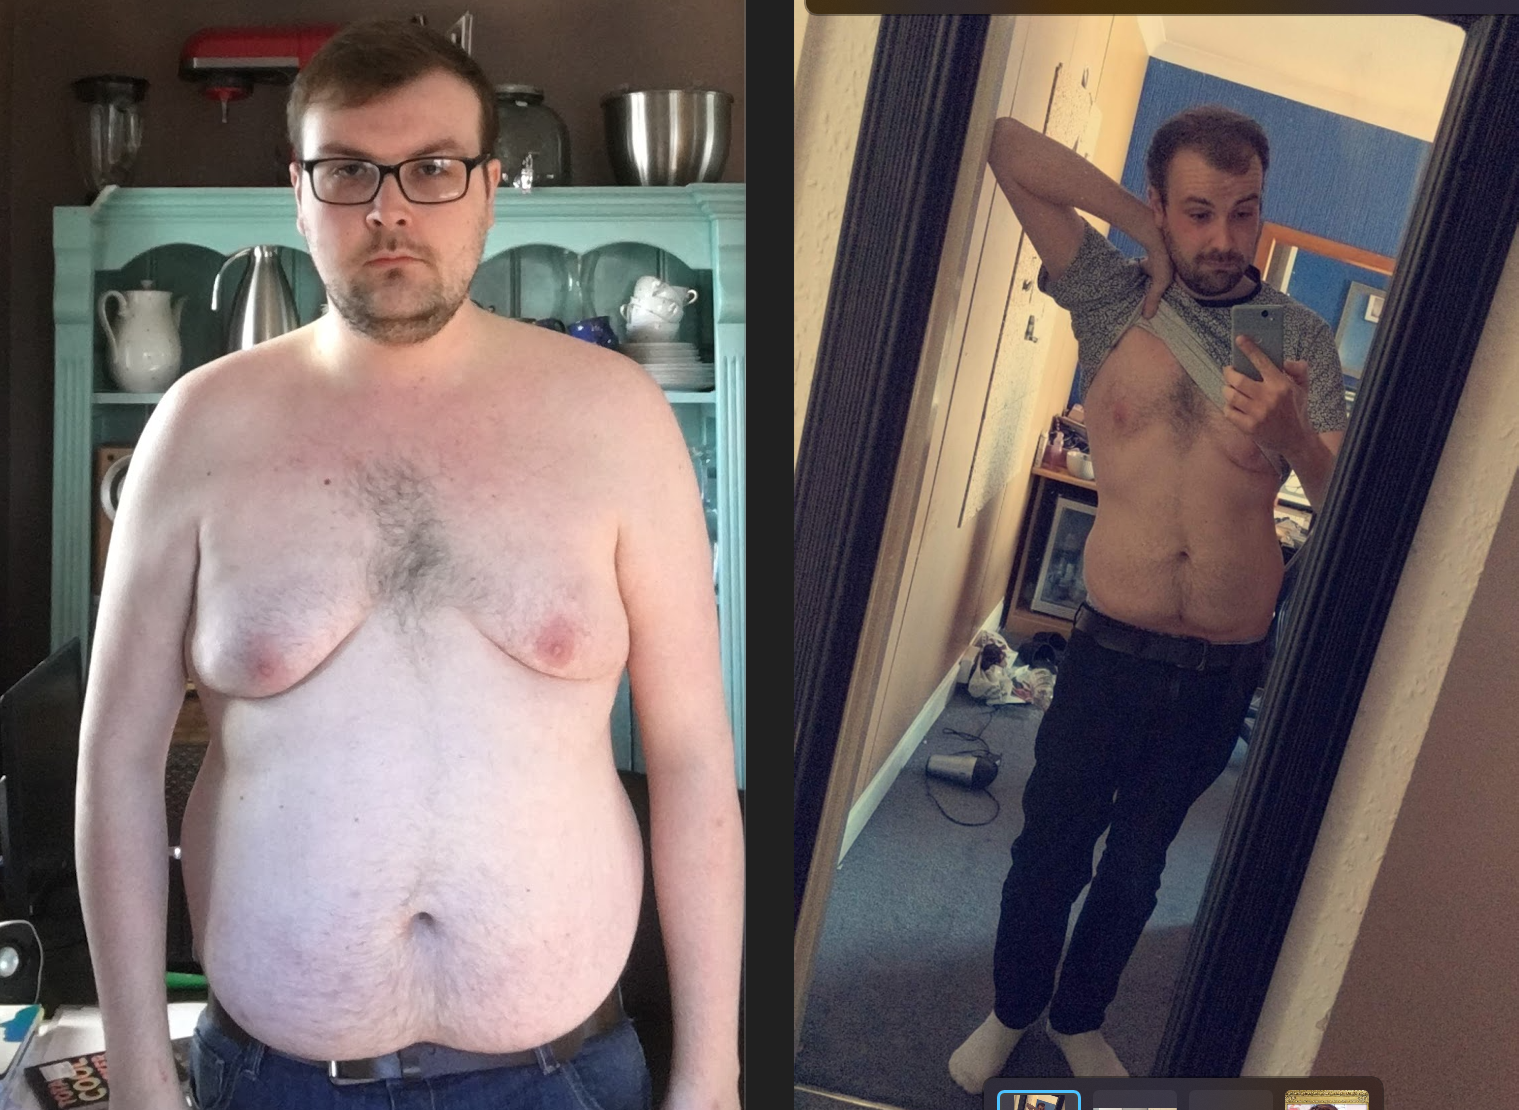 6 foot 2 Male Before and After 91 lbs Fat Loss 266 lbs to 175 lbs